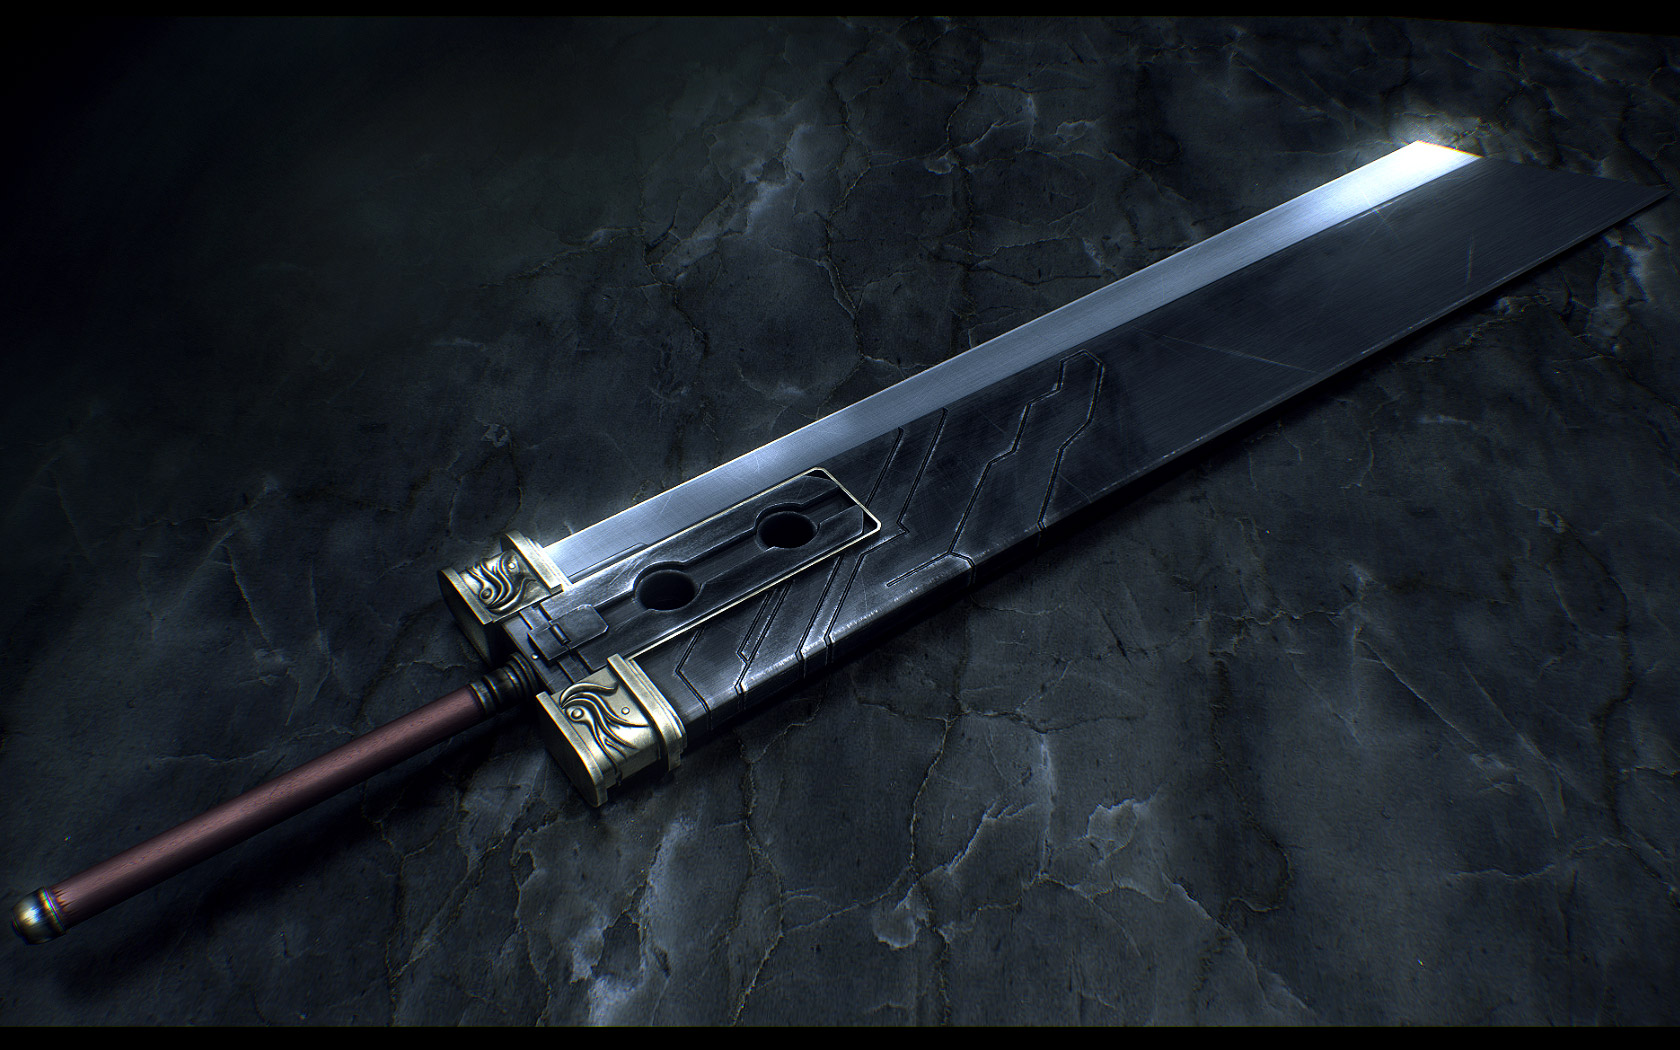 Buster_sword_by_Wen_JR